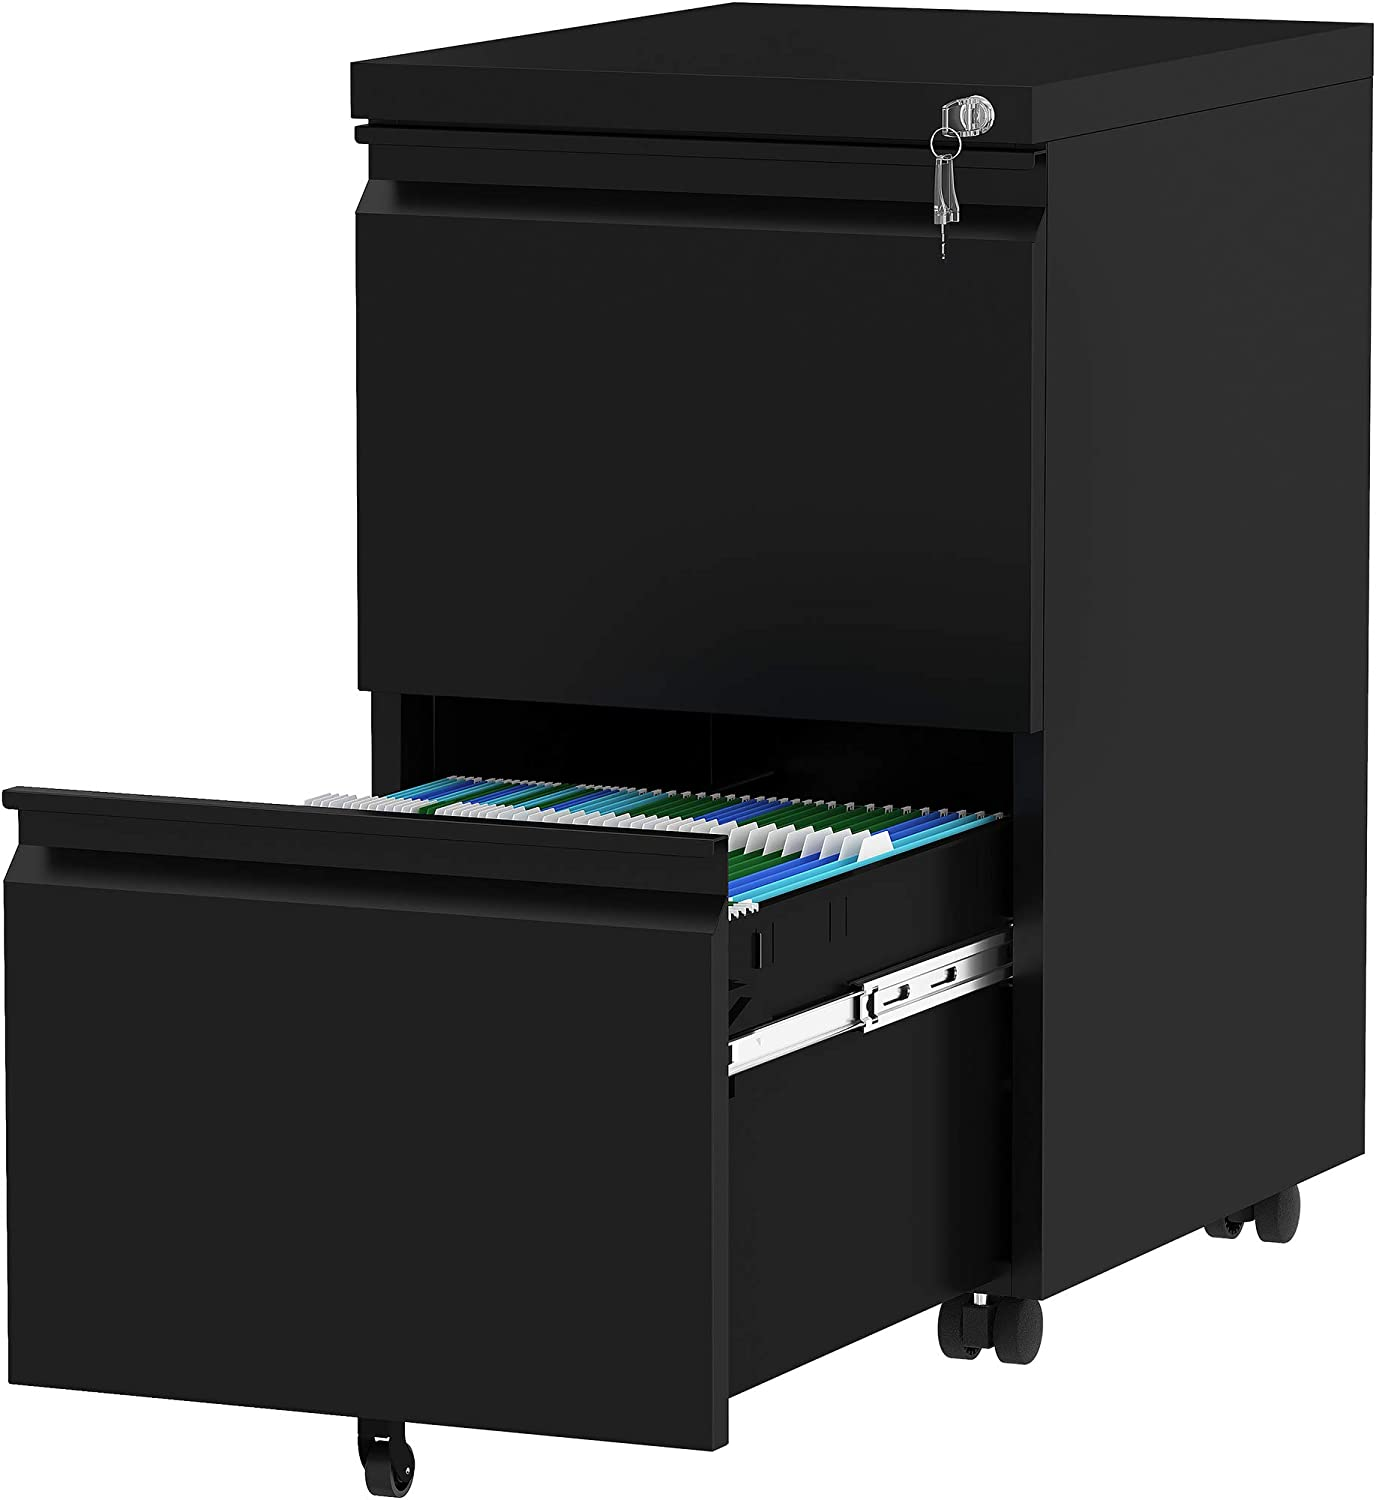 YITAHOME 2-Drawer Filing Cabinet Office Drawers with Lock, Portable Metal File Cabinet, Pre-Built Office Storage Cabinet for A4/Letter/Legal (Black)